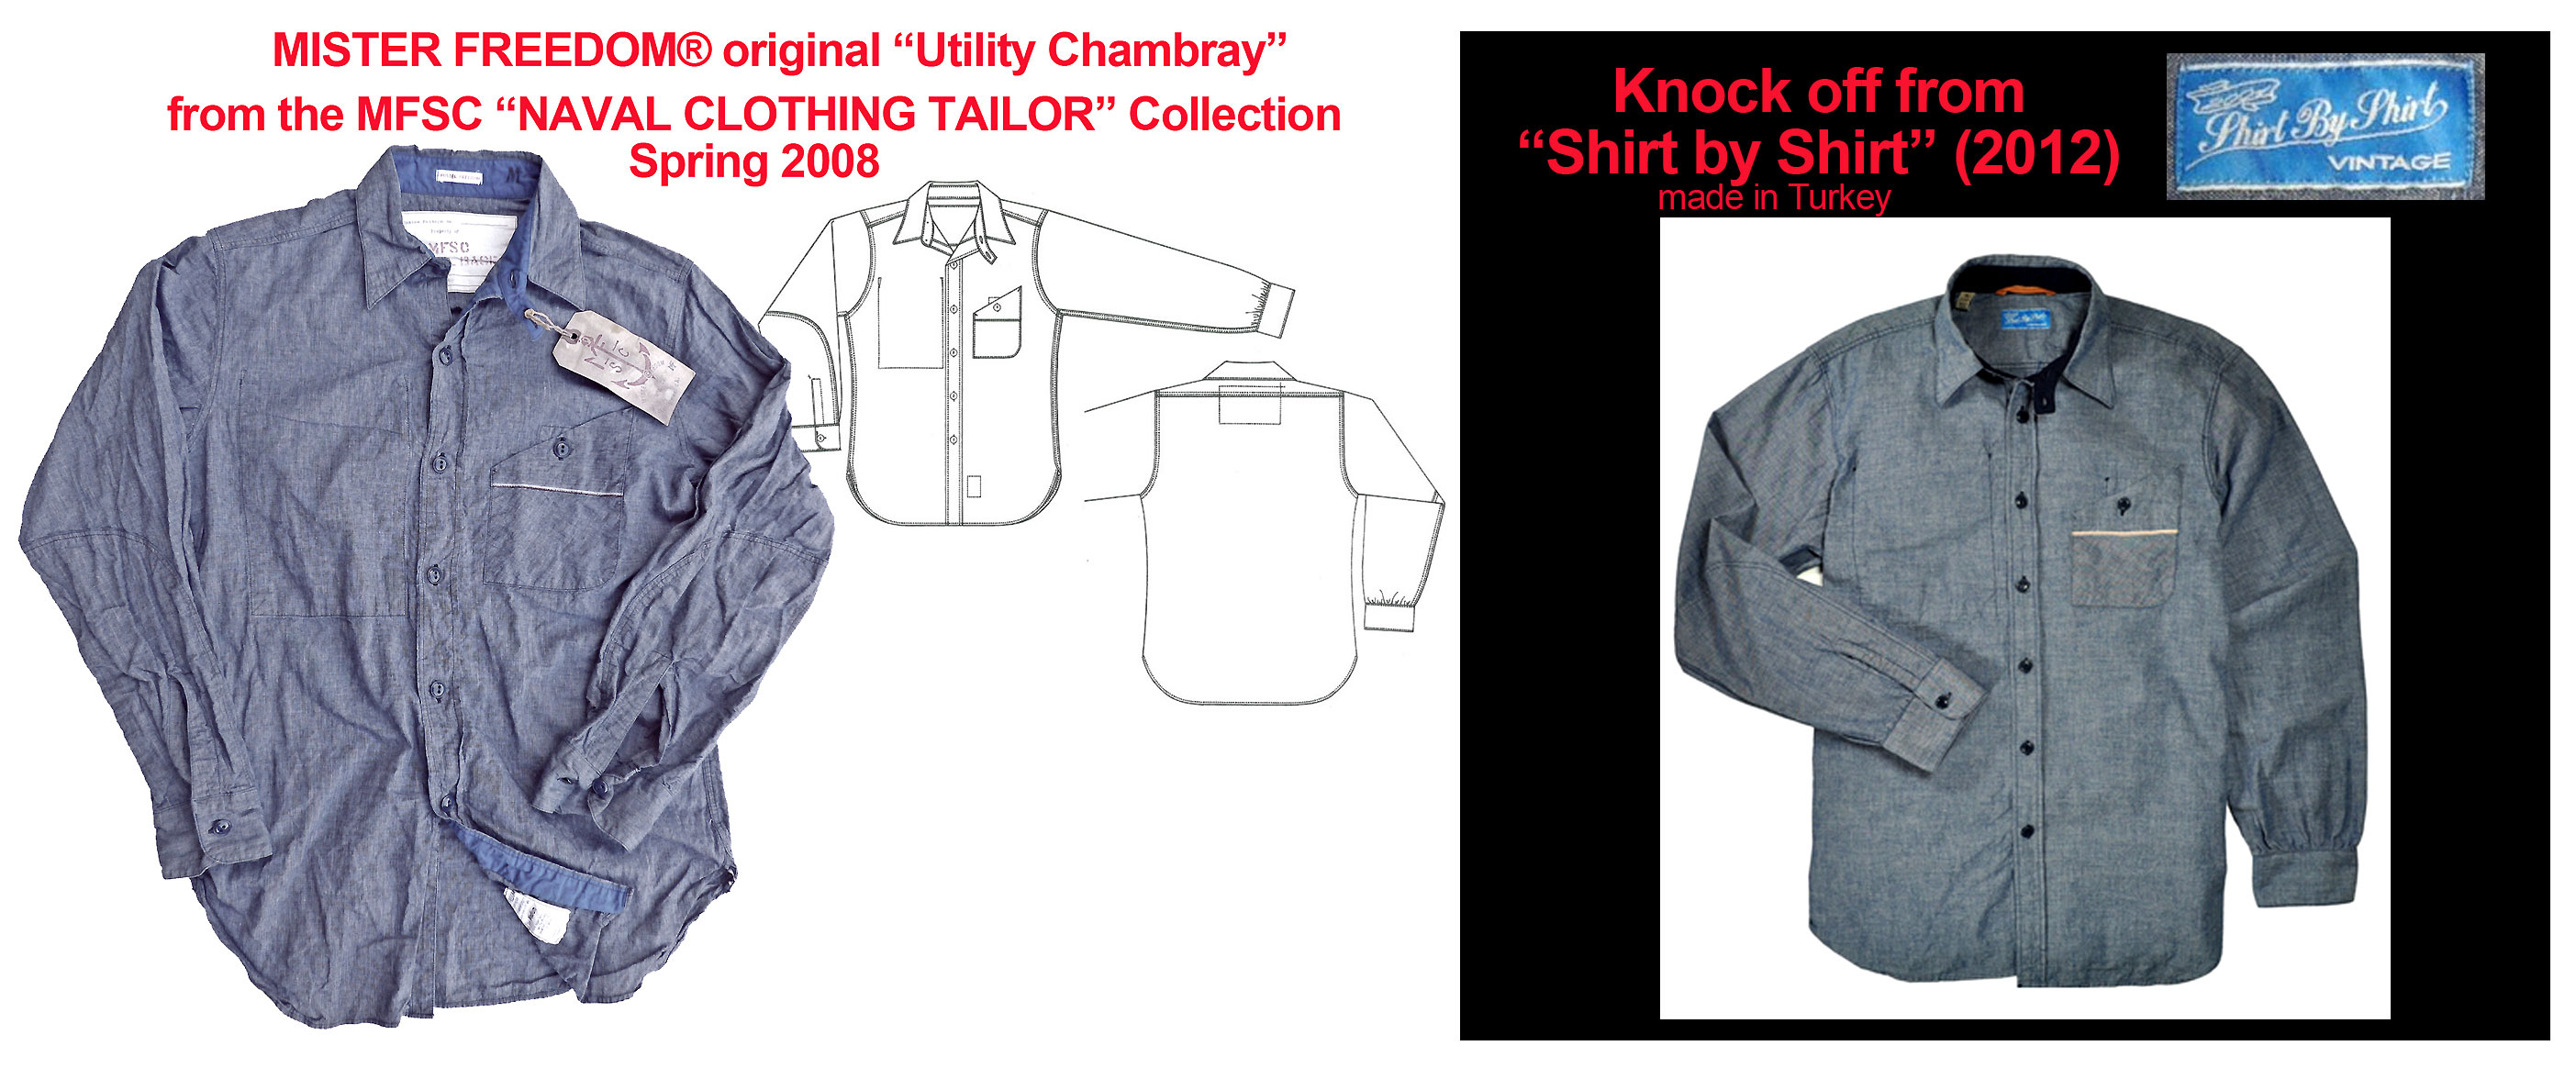 "2012 ""Shirt by Shirt"" knock-off of MF® Utility Chambray ©2008"